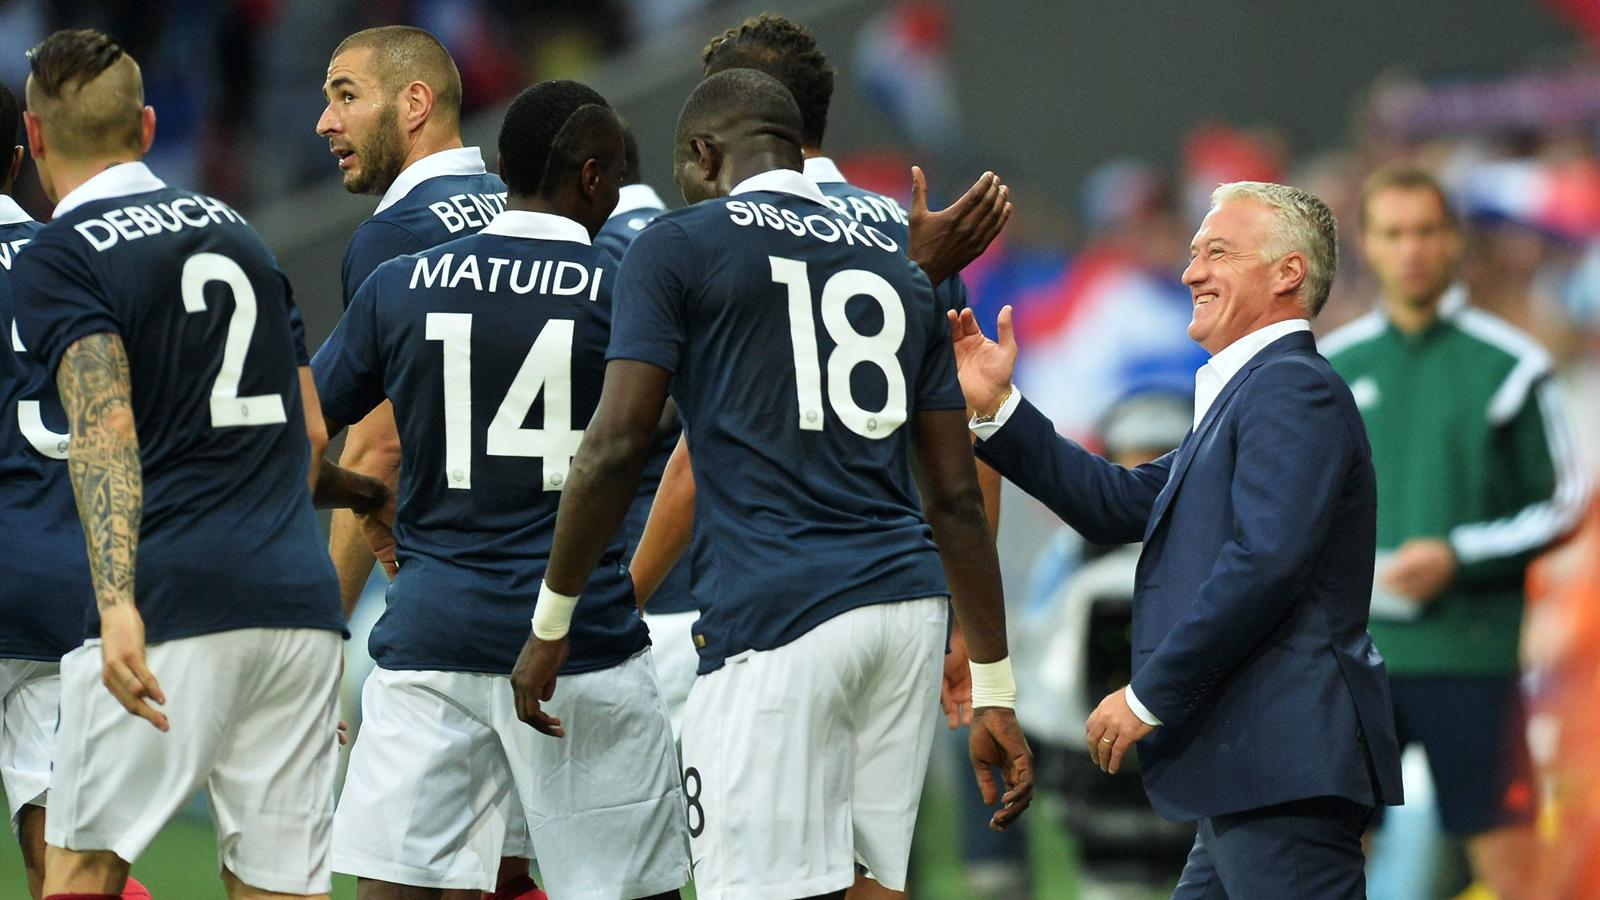 Coupe du monde de lloris sissoko avec deschamps tout - Qualification coupe du monde resultat ...